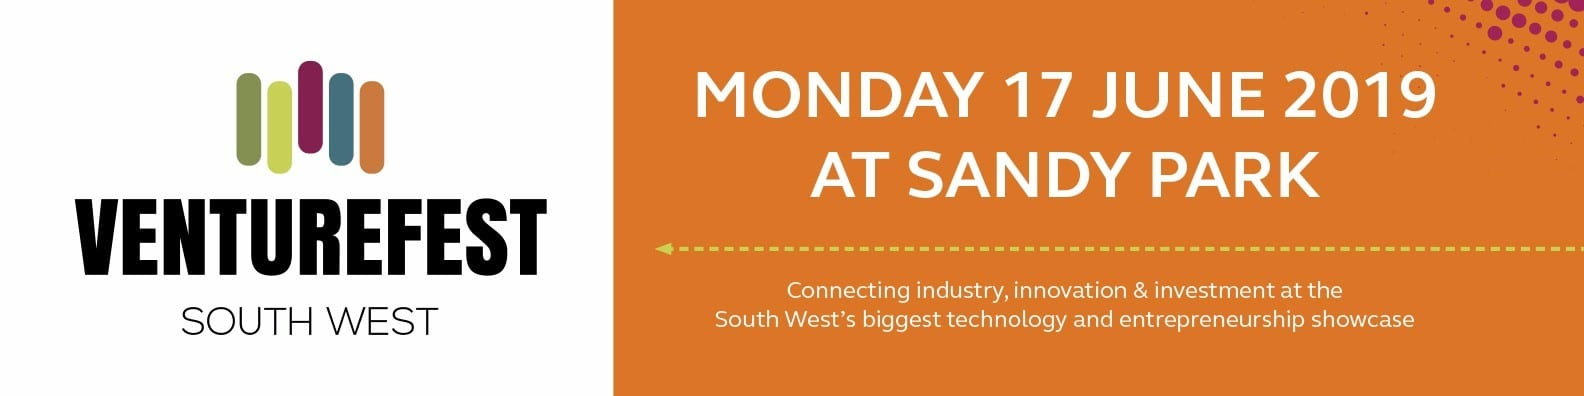 Venturefest South West: 17th June 2019, Sandy Park, Exeter